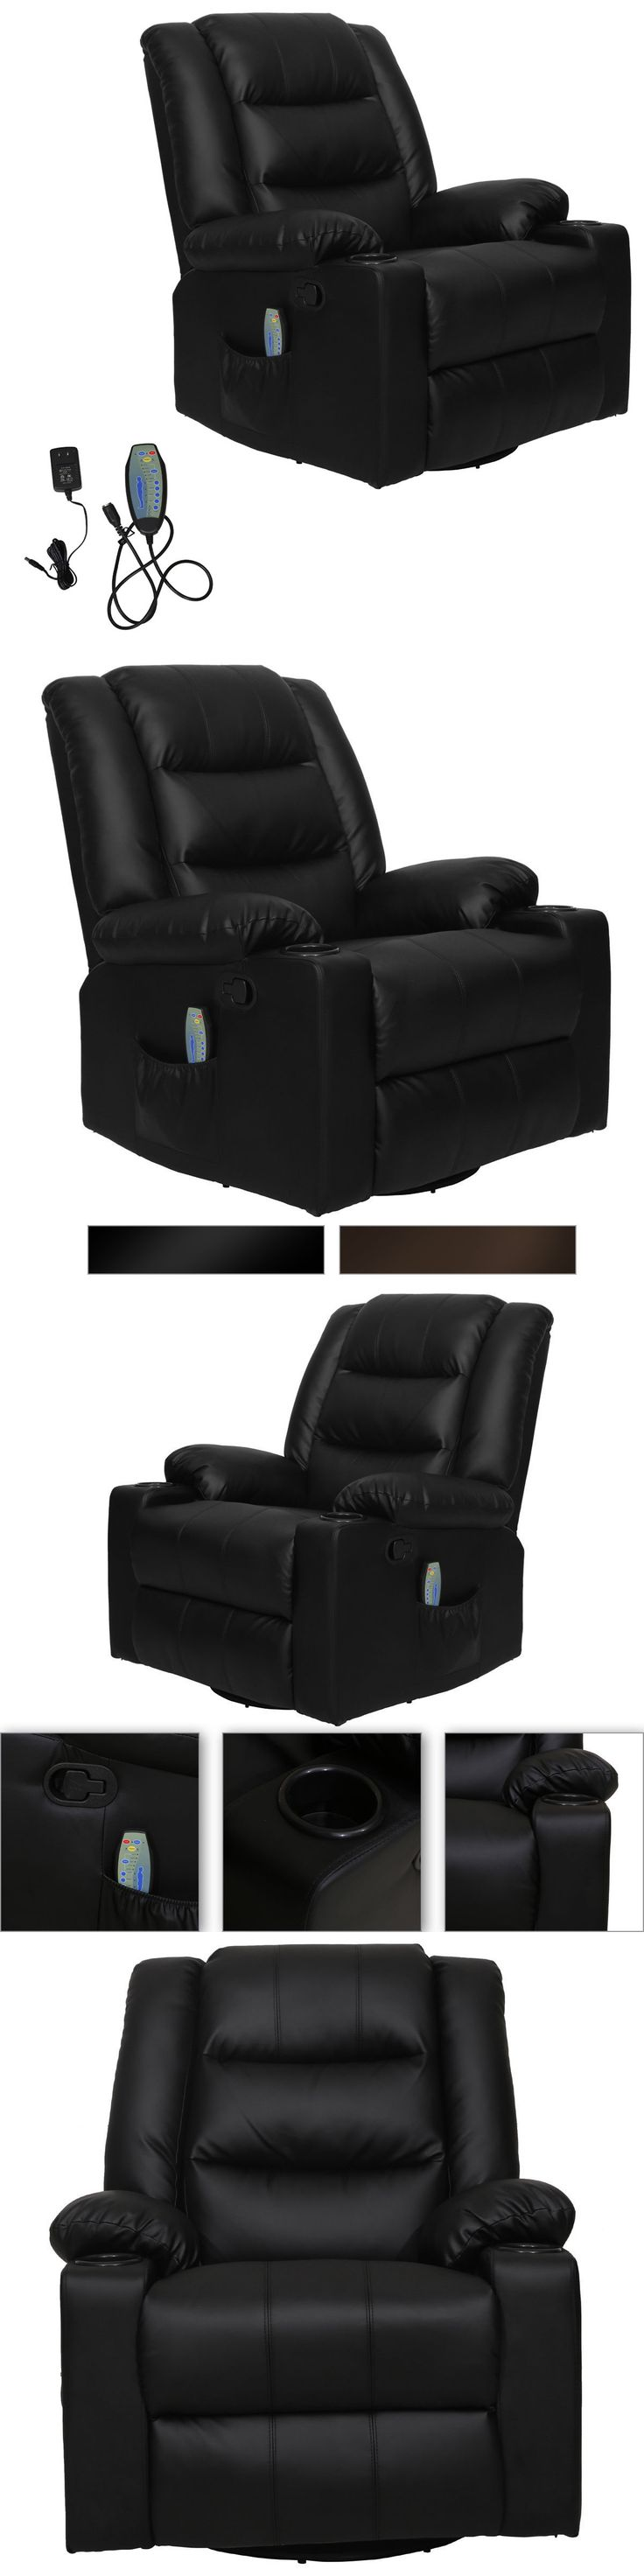 Electric tv recliner massage chair black with a footstool www vidaxl - Electric Massage Chairs Recliner Massage Sofa Chair Deluxe Ergonomic Lounge Couch Heated W Control Black